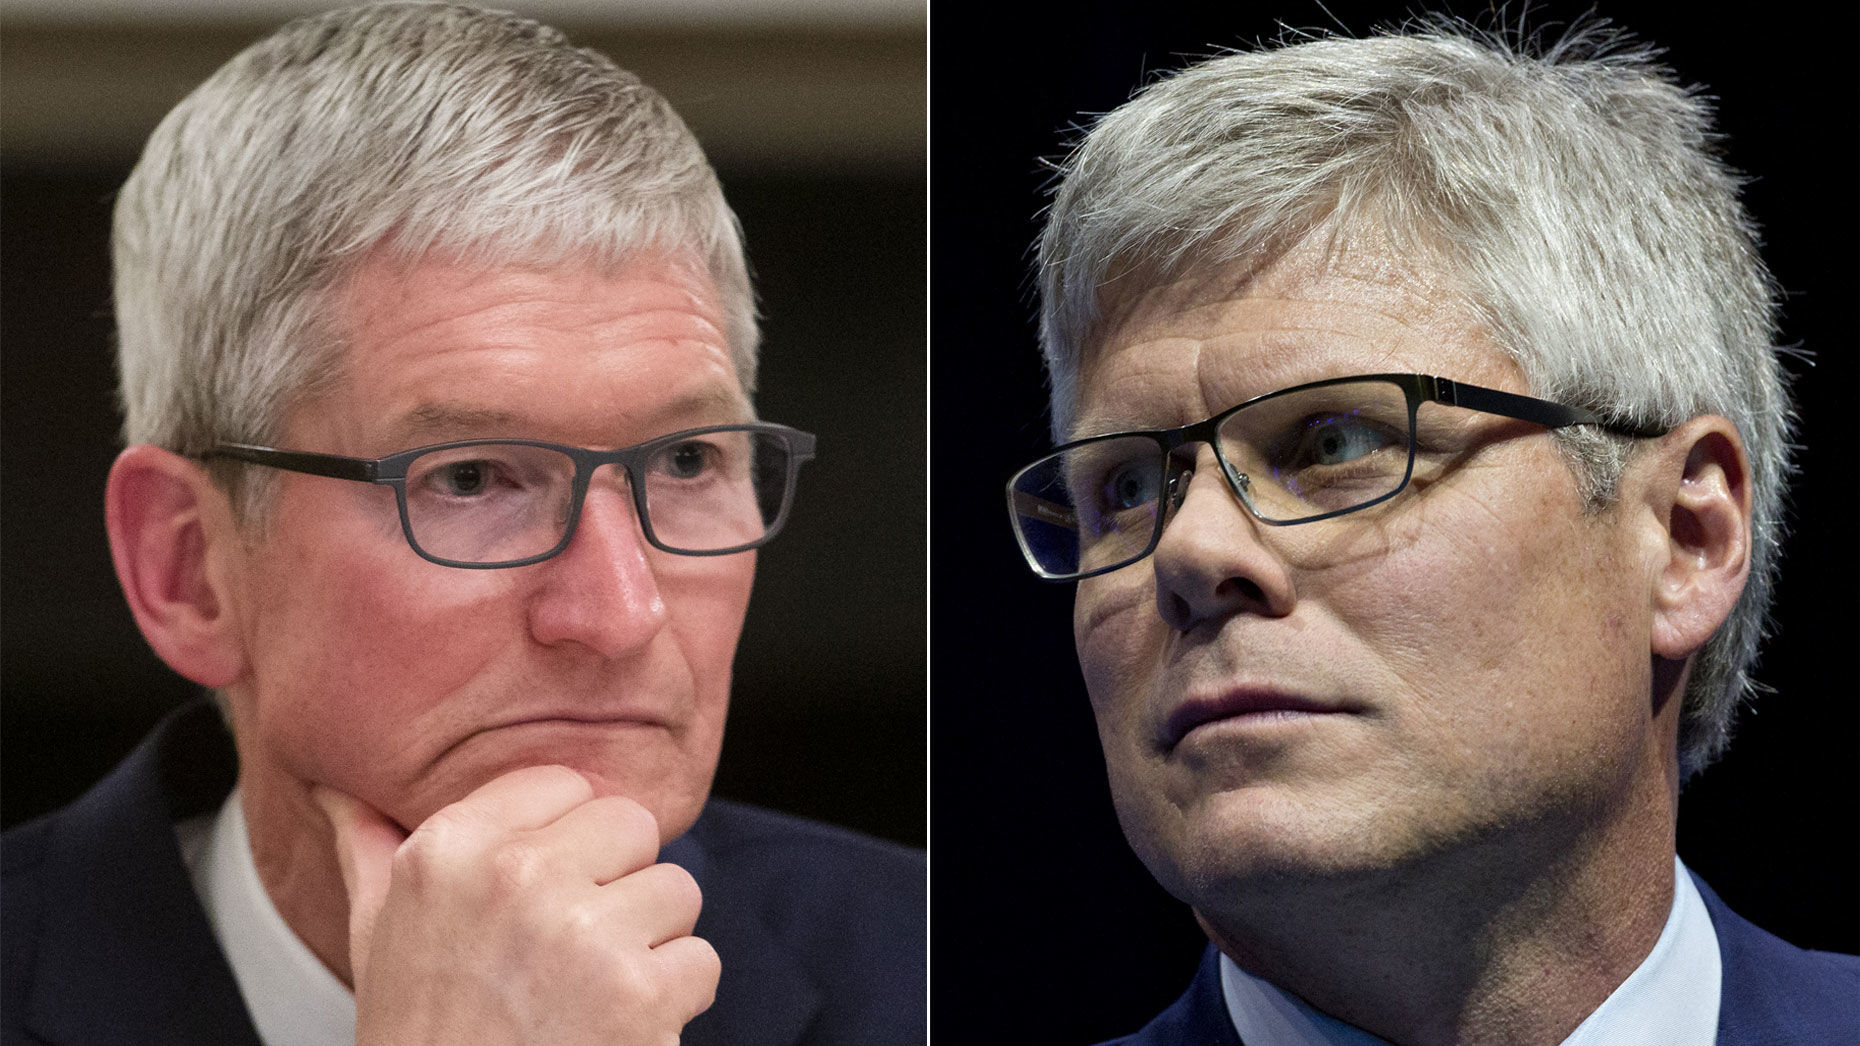 Apple CEO Tim Cook (left) and Qualcomm CEO Steve Mollenkopf. Photos by Bloomberg